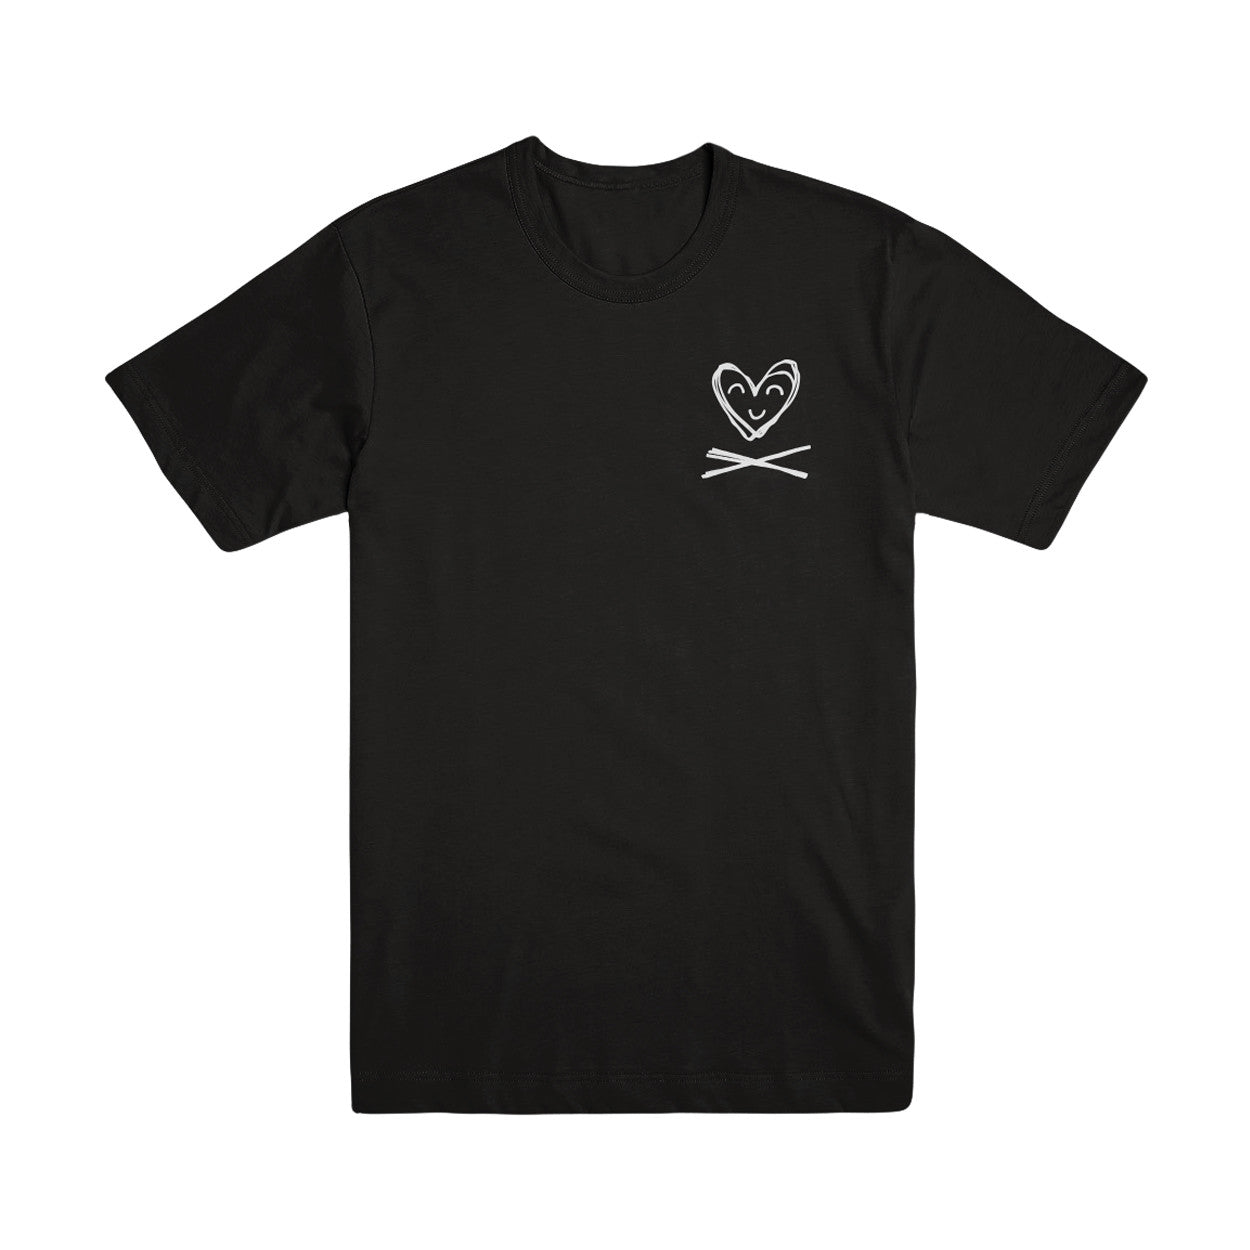 Superlove Tee